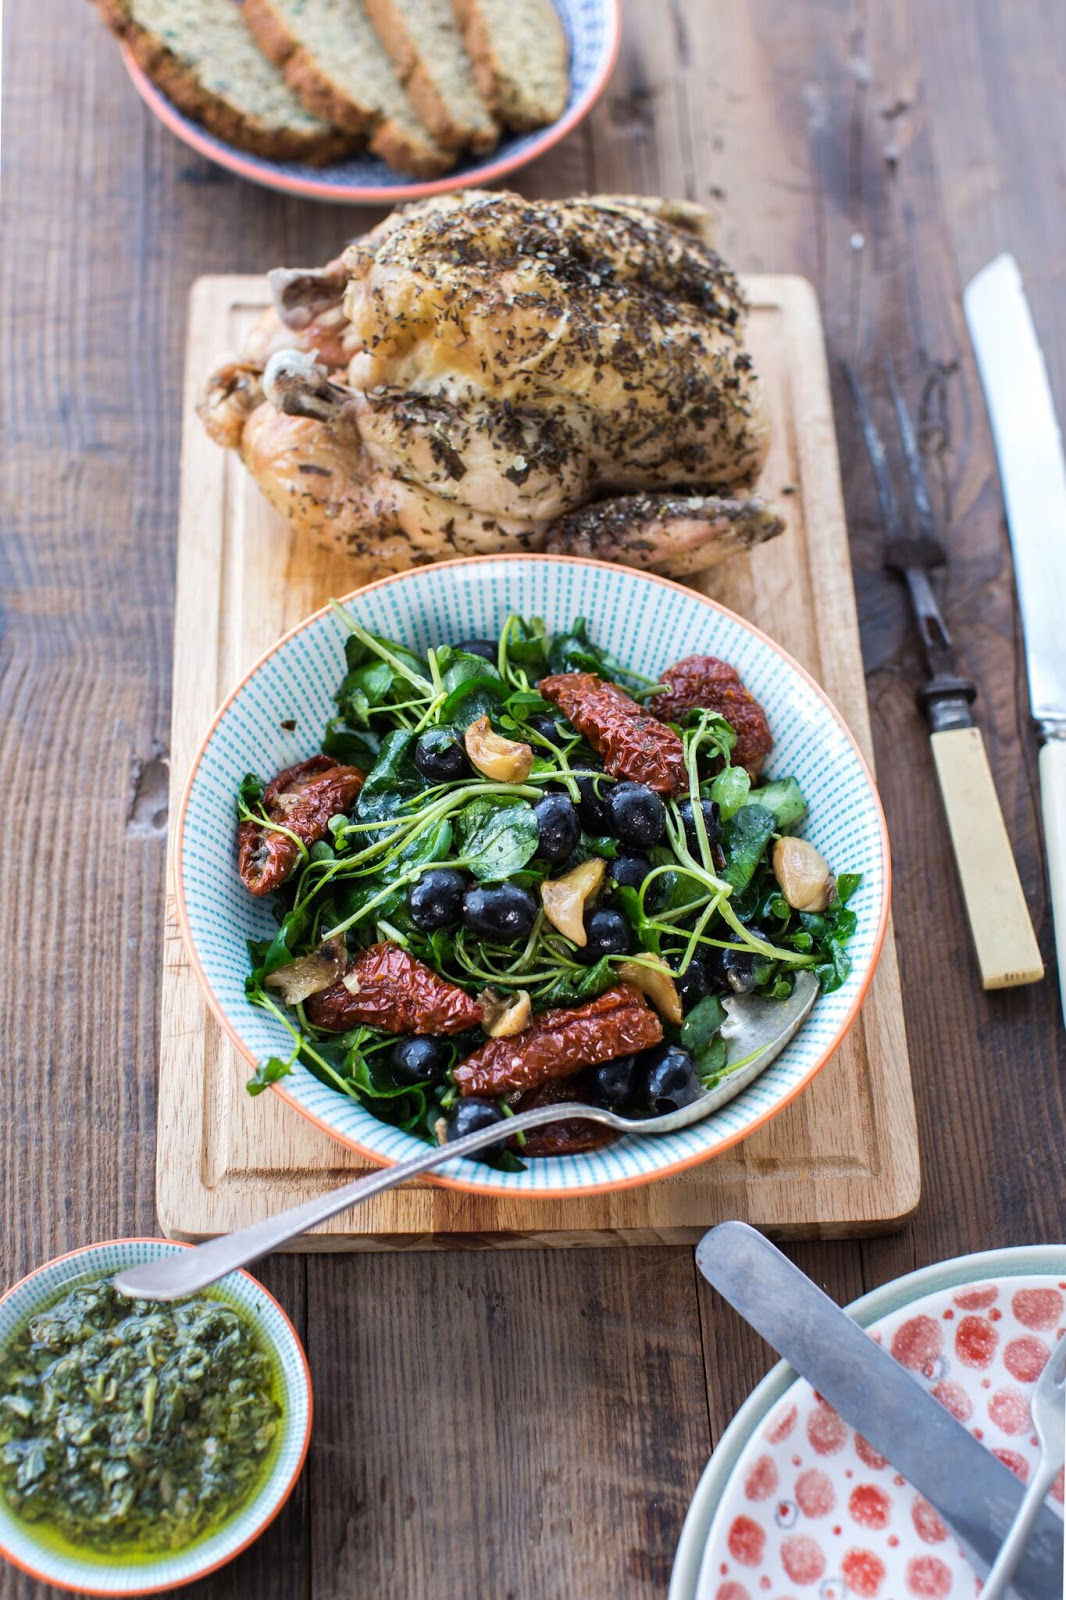 Italian Herb-Roasted Chicken With Watercress, Sun-Blushed Tomatoes And Salsa Verde